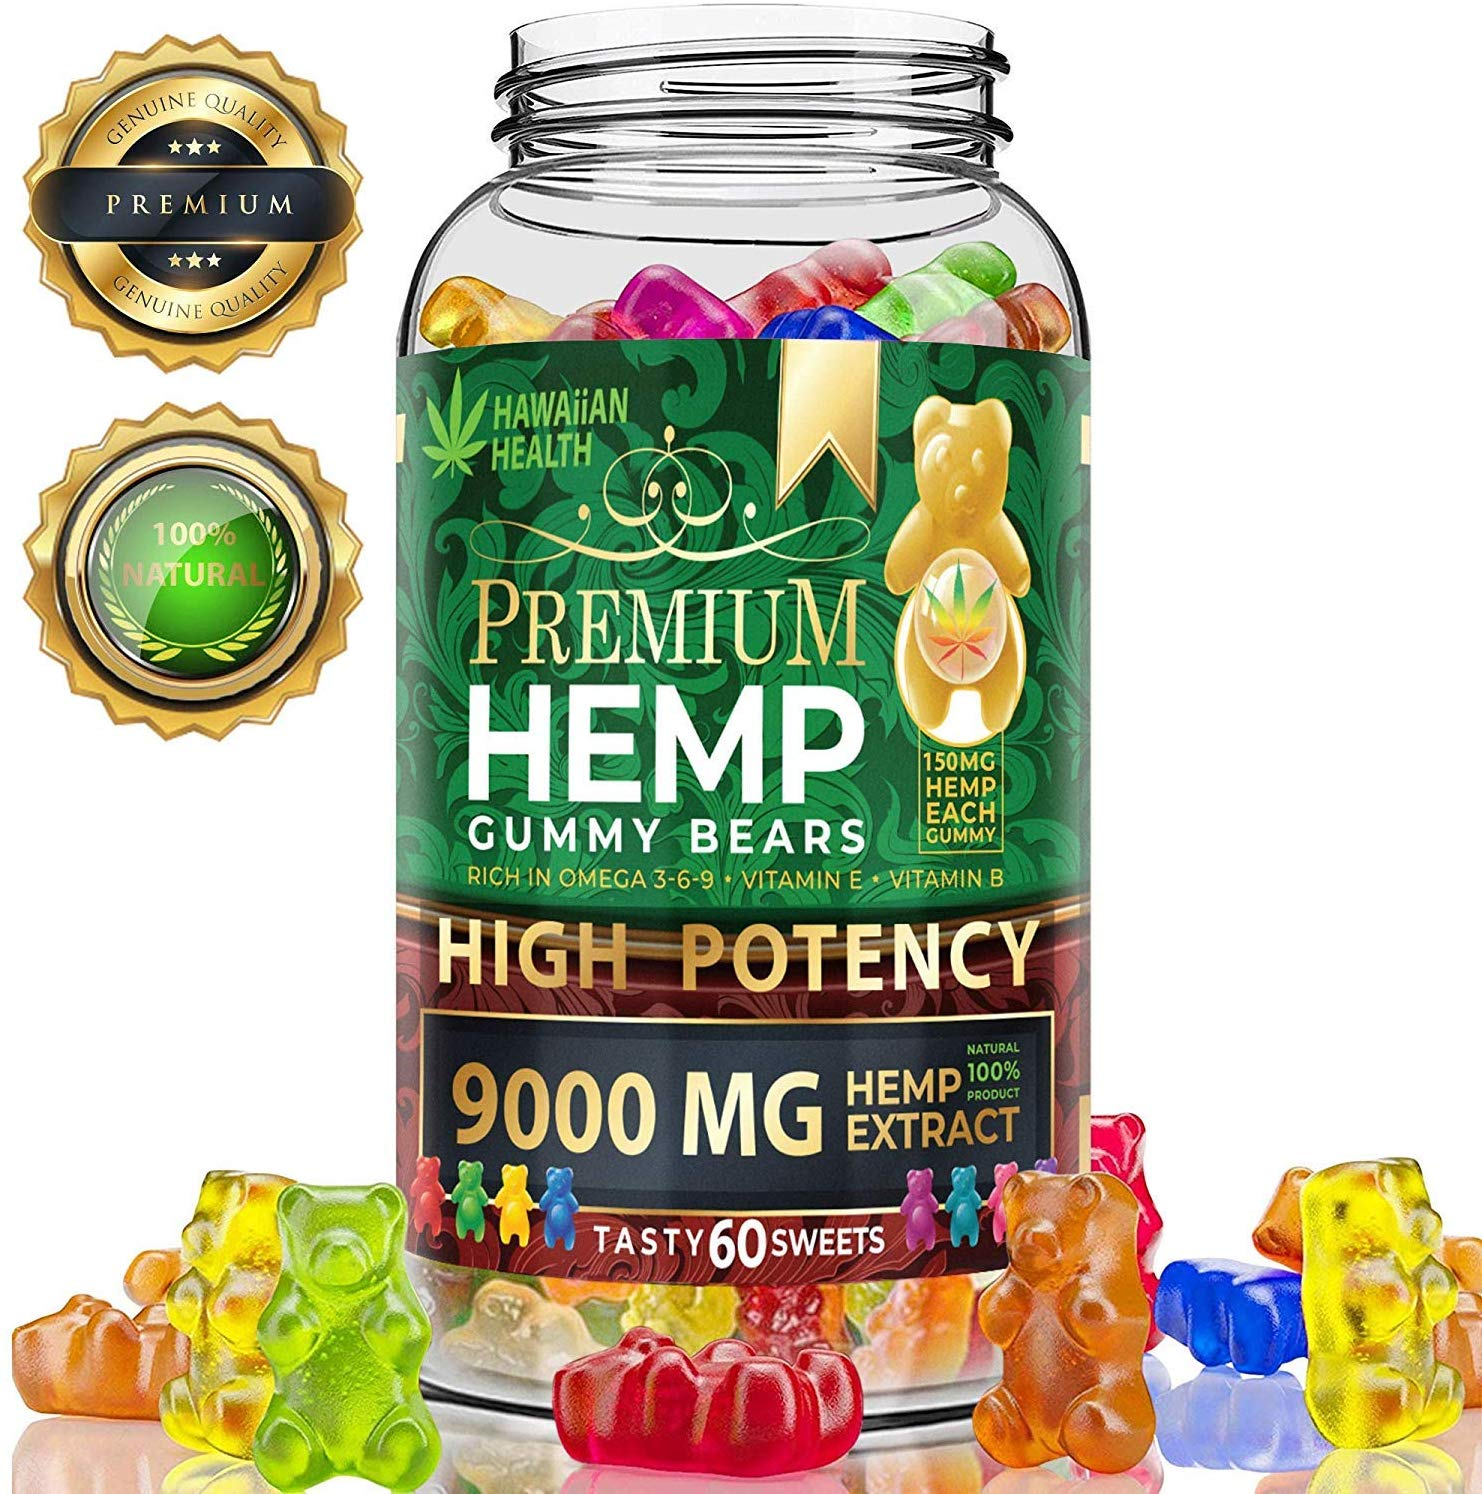 Review of Hemp Gummies Premium 9000MG High Potency 150 Per Fruity Gummy Bear with Hemp Oil by Hawaiian health